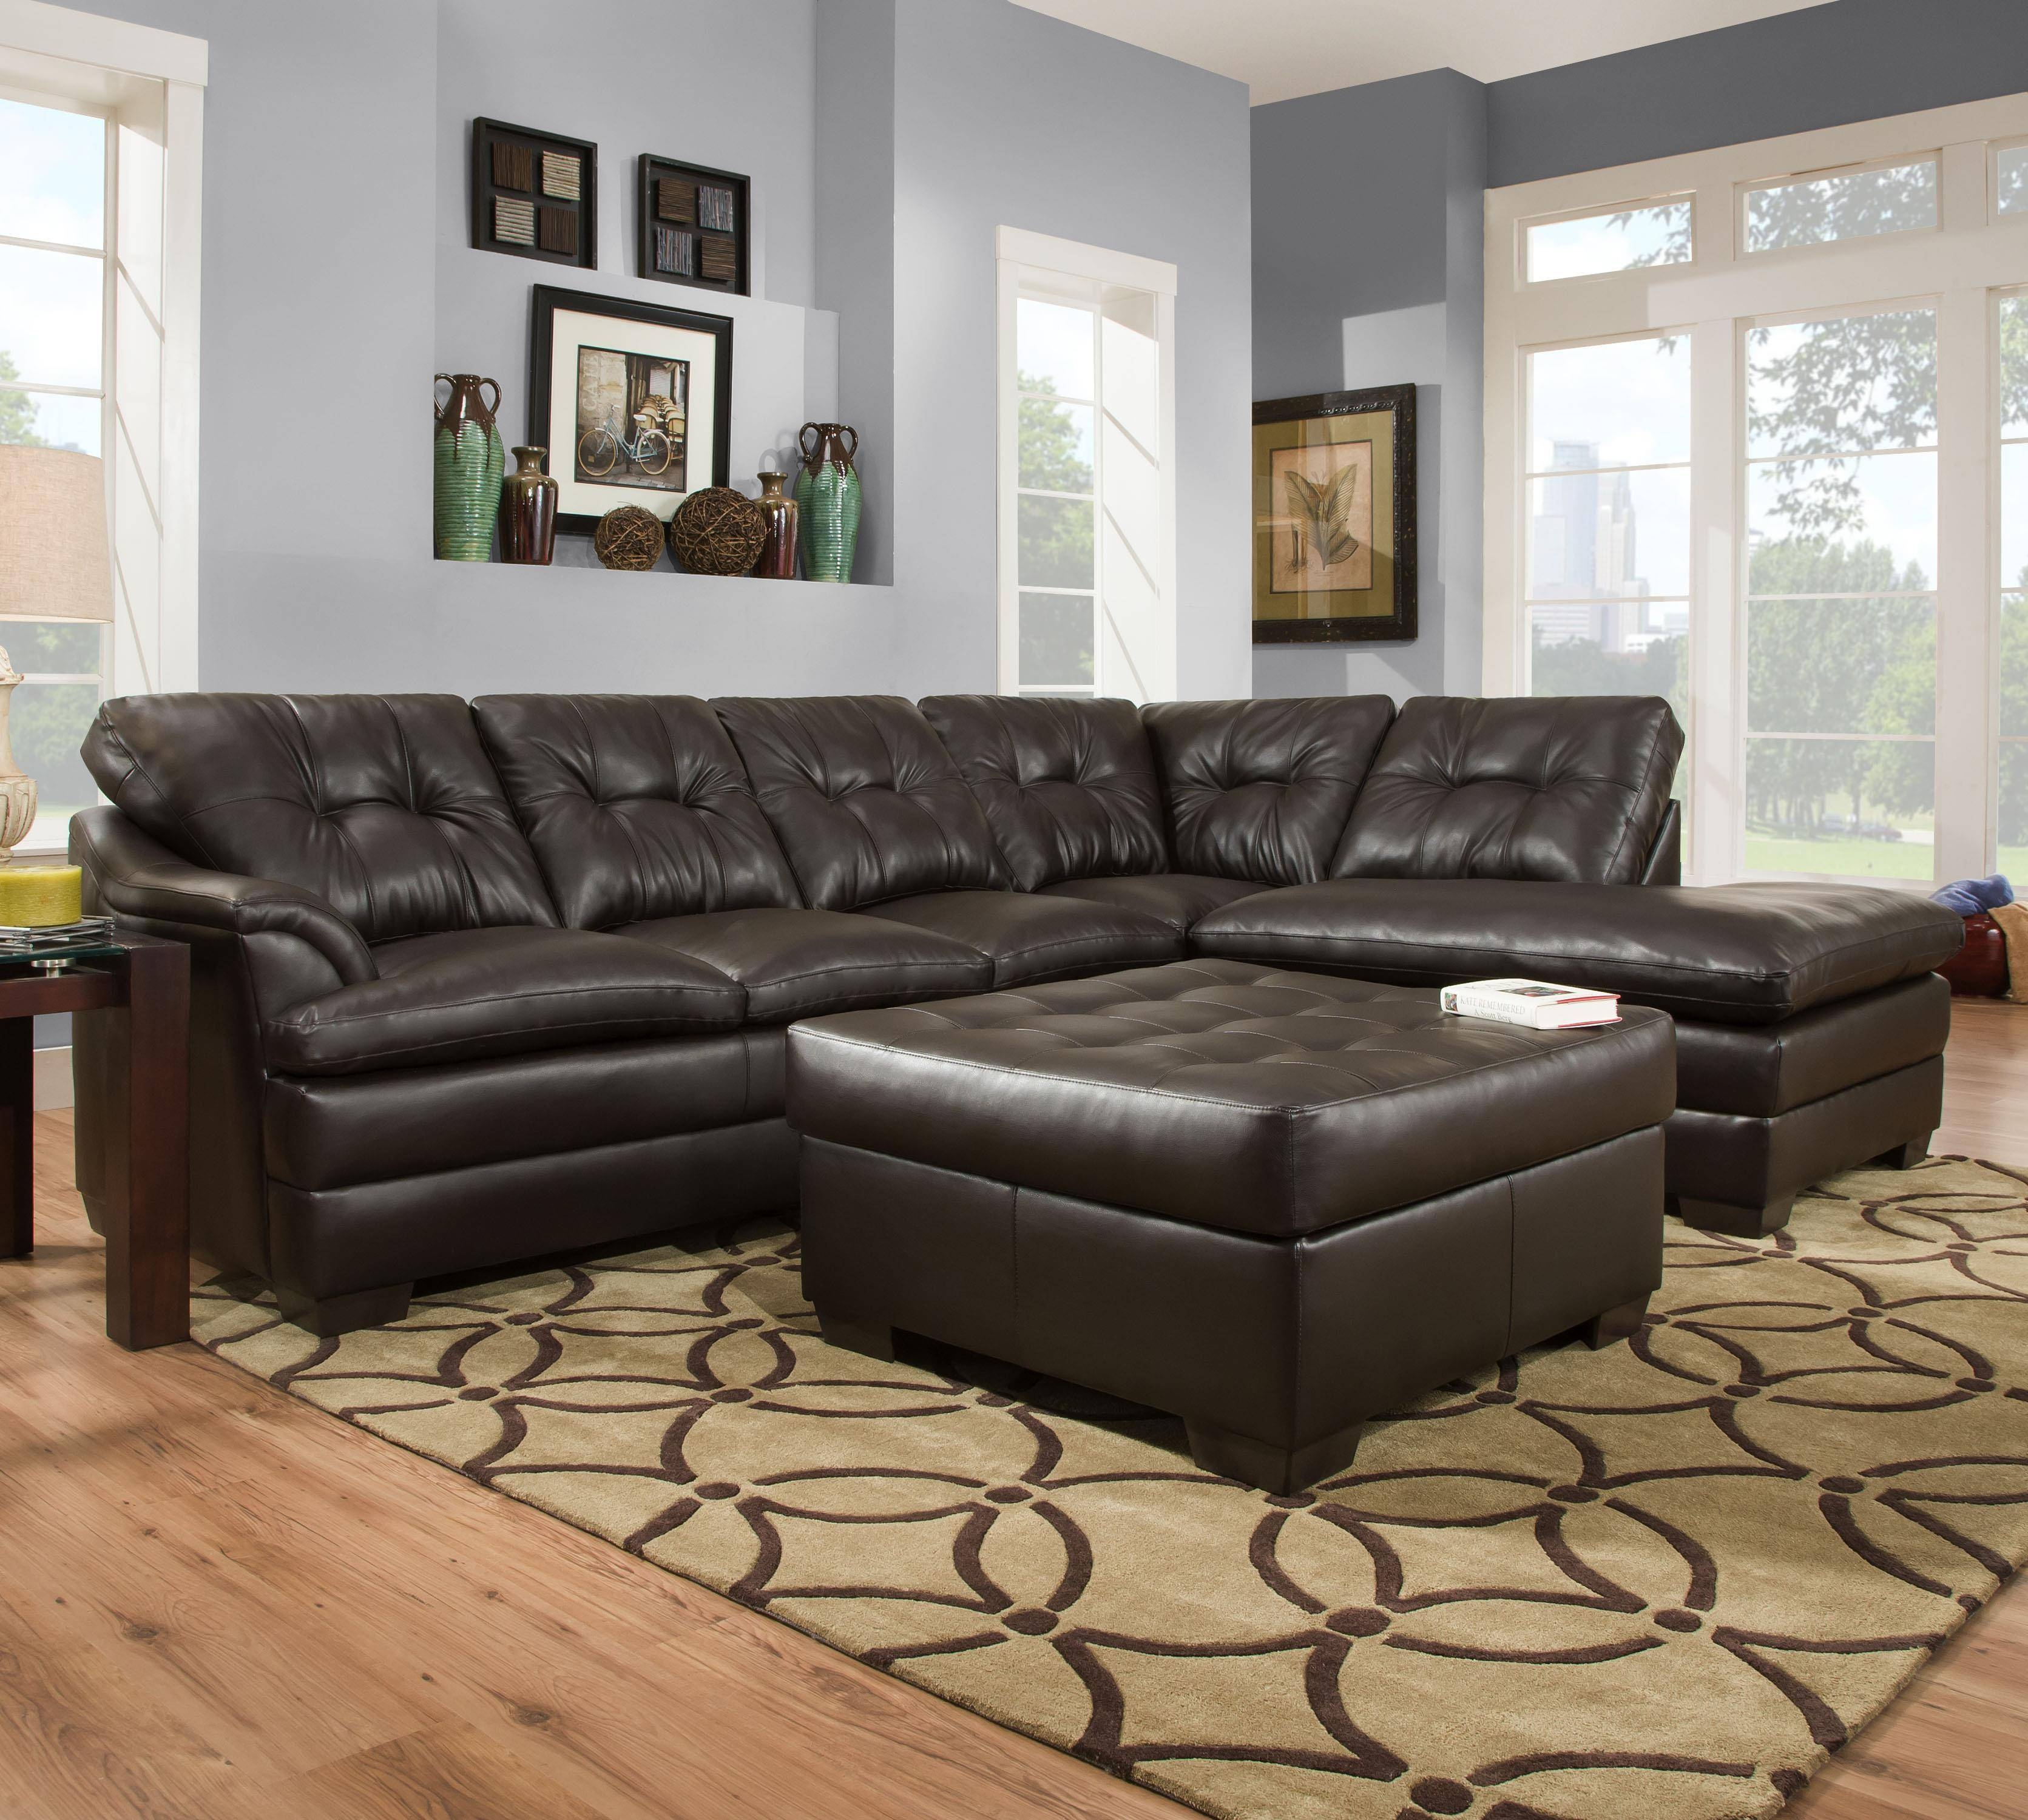 Simmons Upholstery 5122 Transitional Sectional Sofa With Tufted intended for Simmons Sectional Sofas (Image 19 of 30)